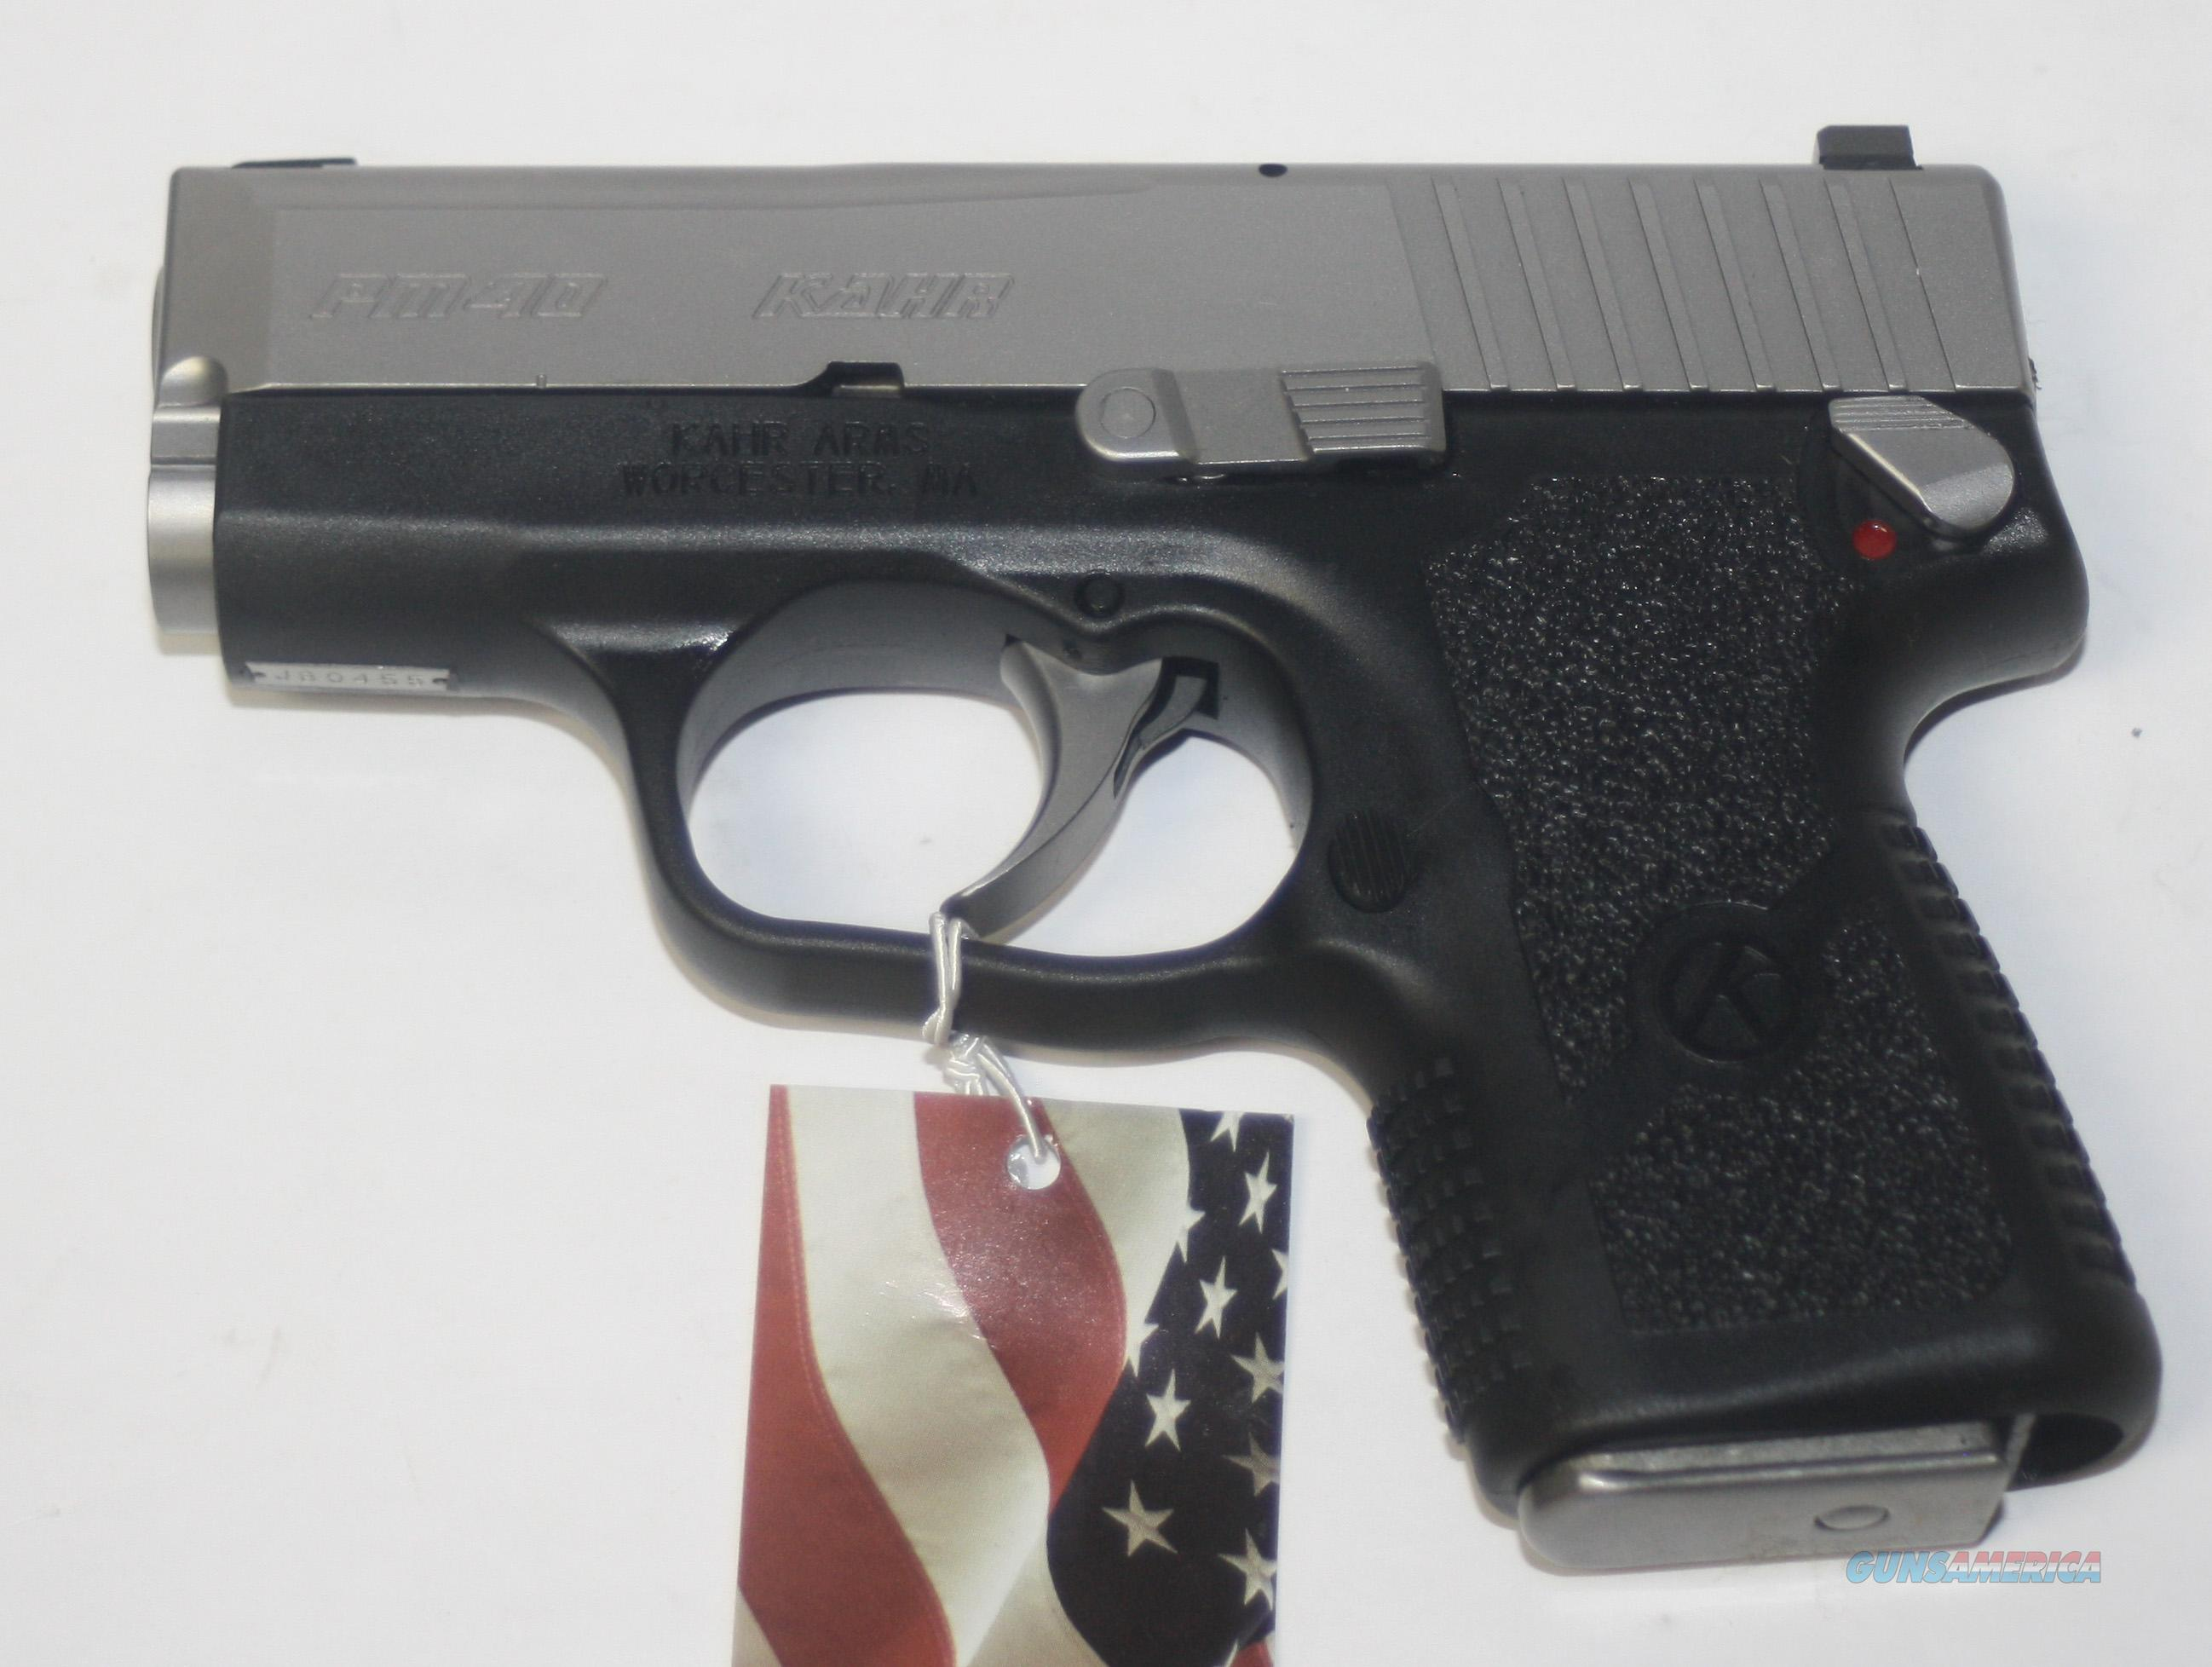 KAHR ARMS PM4143N MODEL PM40 40 S&W WITH EXTERNAL SAFETY AND LCI AND TRITIUM NIGHT SIGHTS NEW IN BOX  Guns > Pistols > Kahr Pistols